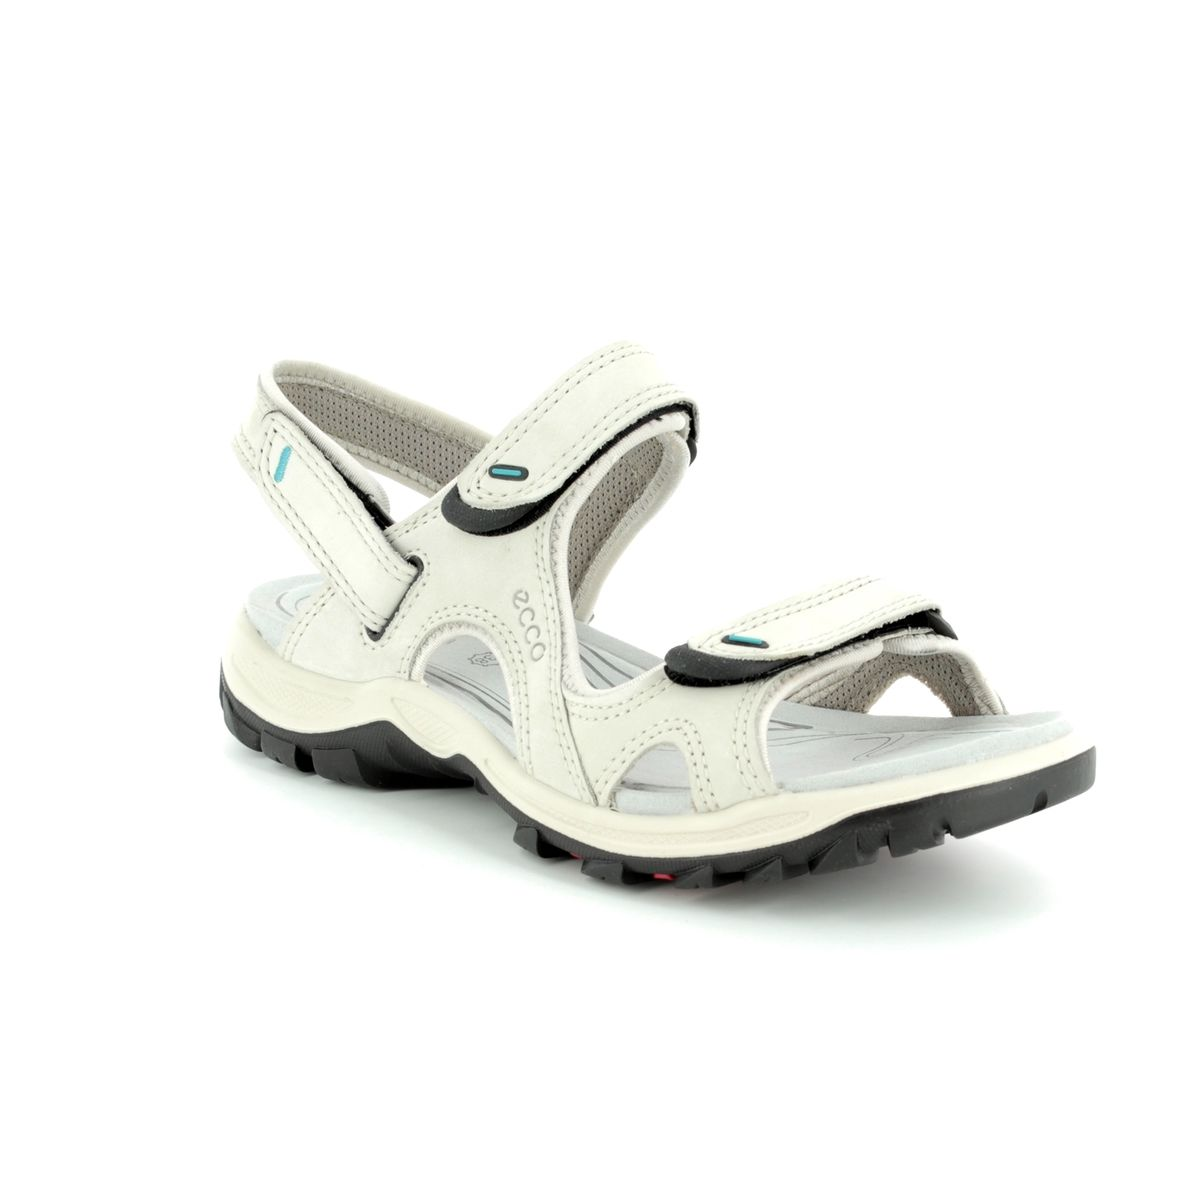 37a0323f2d26 ECCO Walking Sandals - Off-white - 820053 59766 OFFROAD LITE